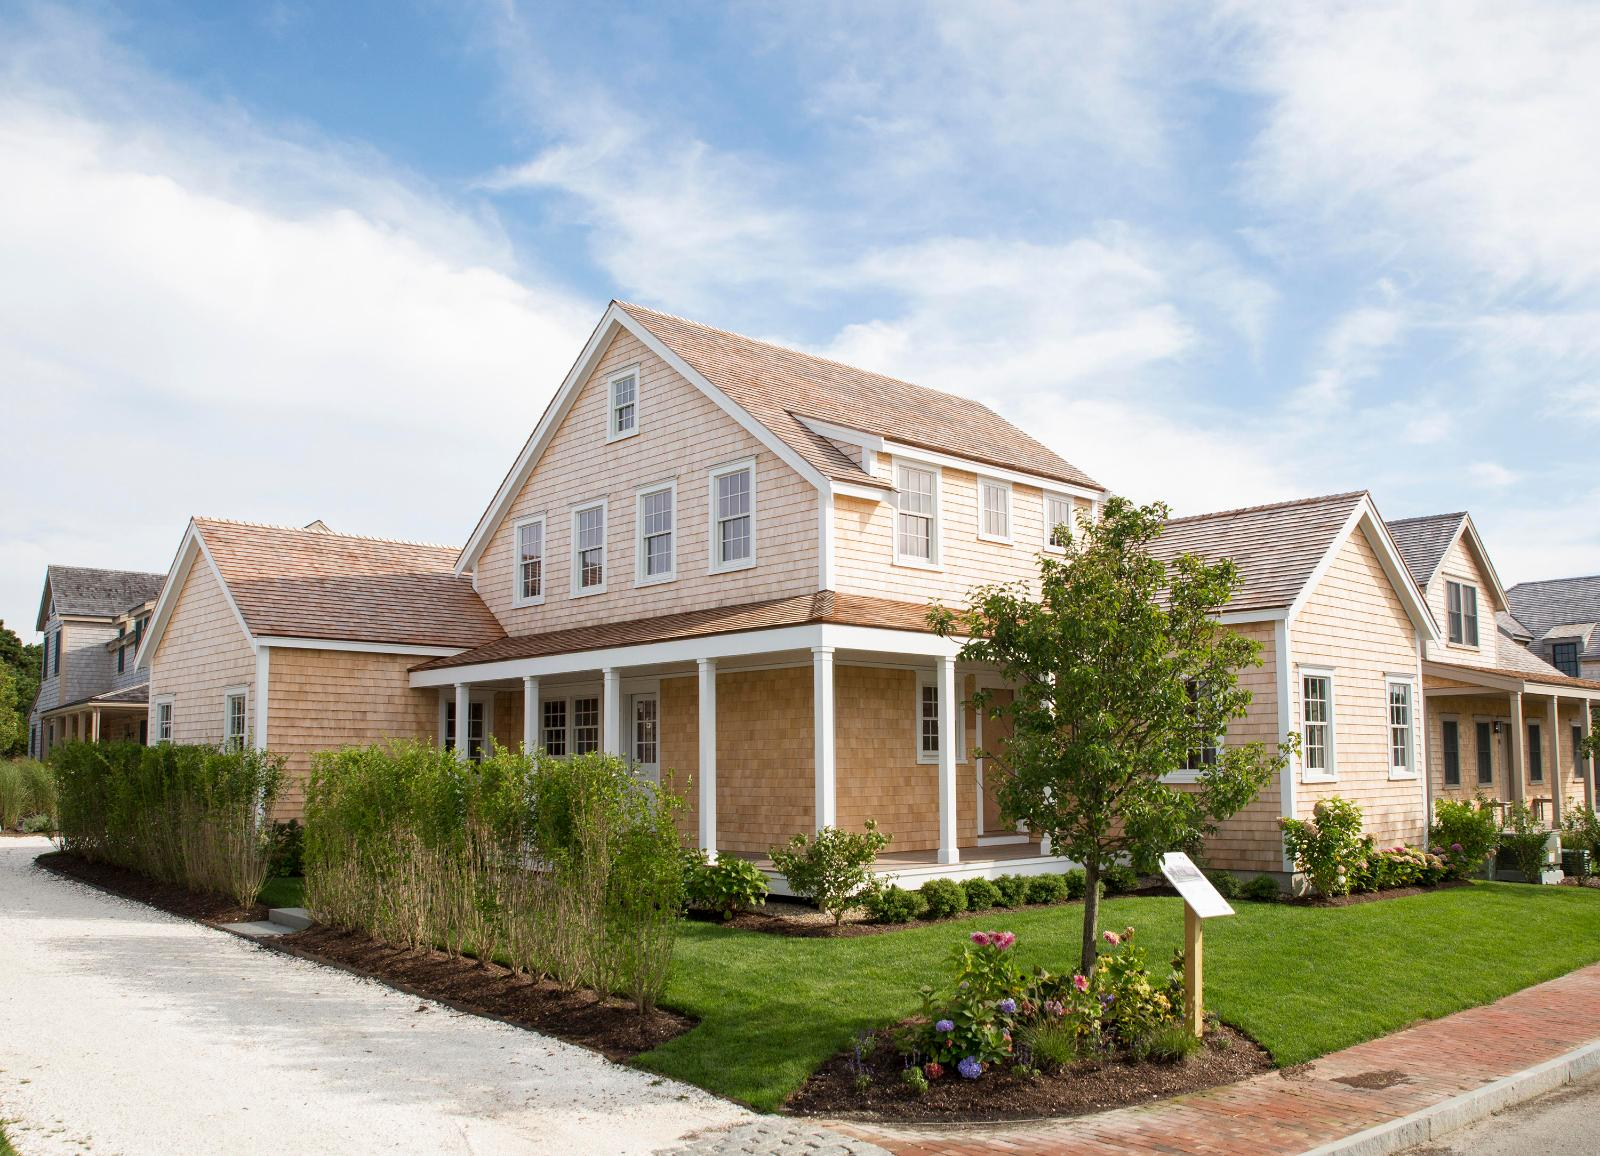 10 blazing star rd nantucket ma mls 21715432 for Nantucket property for sale